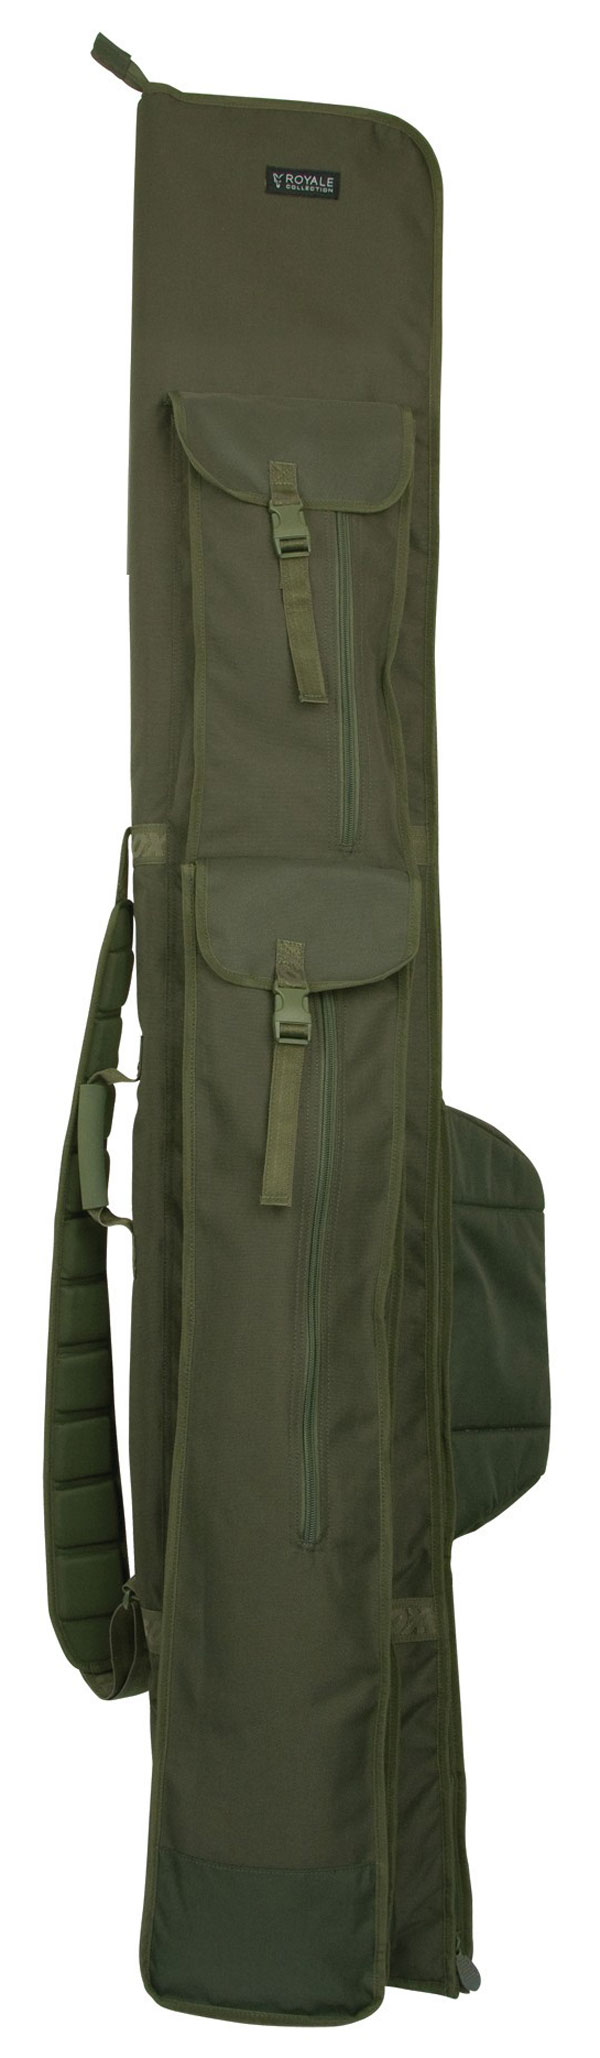 cd8a4898ef ... padded and has practical reel compartments suitable for even big-pit  reels! The Rod Holdall also features an external pocket for banksticks and  another ...